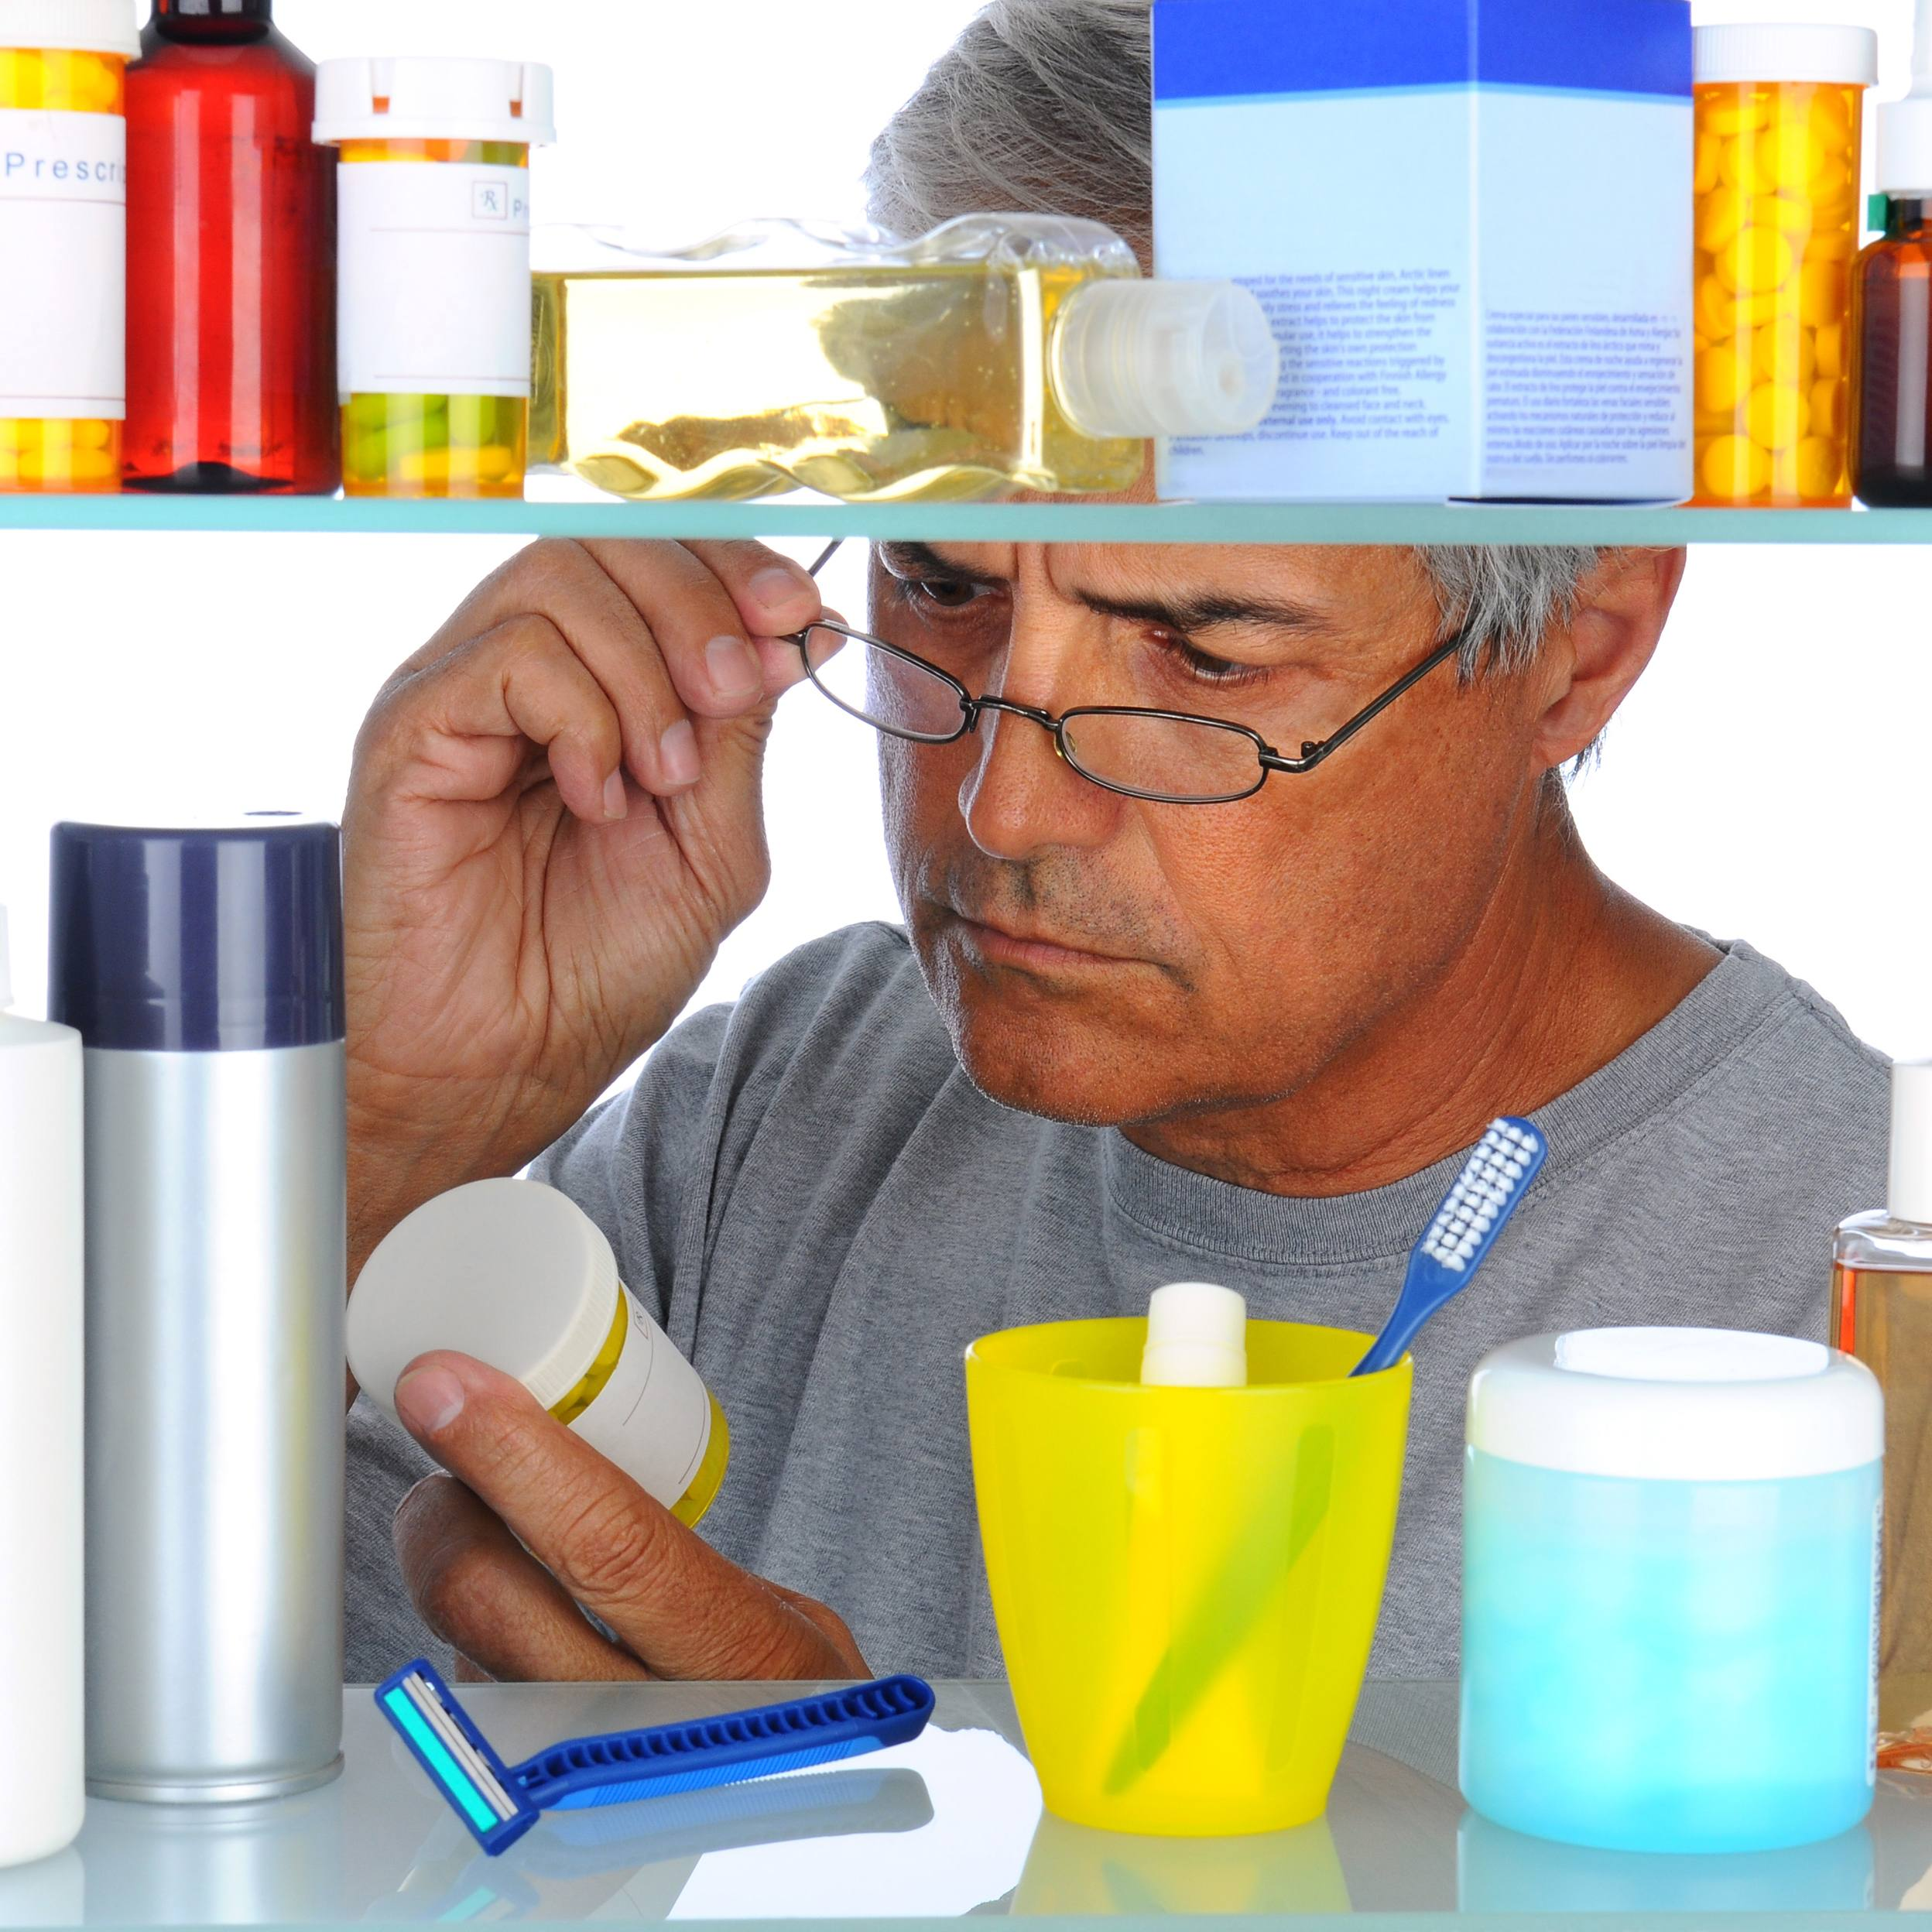 a middle-aged man reading a prescription bottle label in front of his open bathroom medicine cabinet